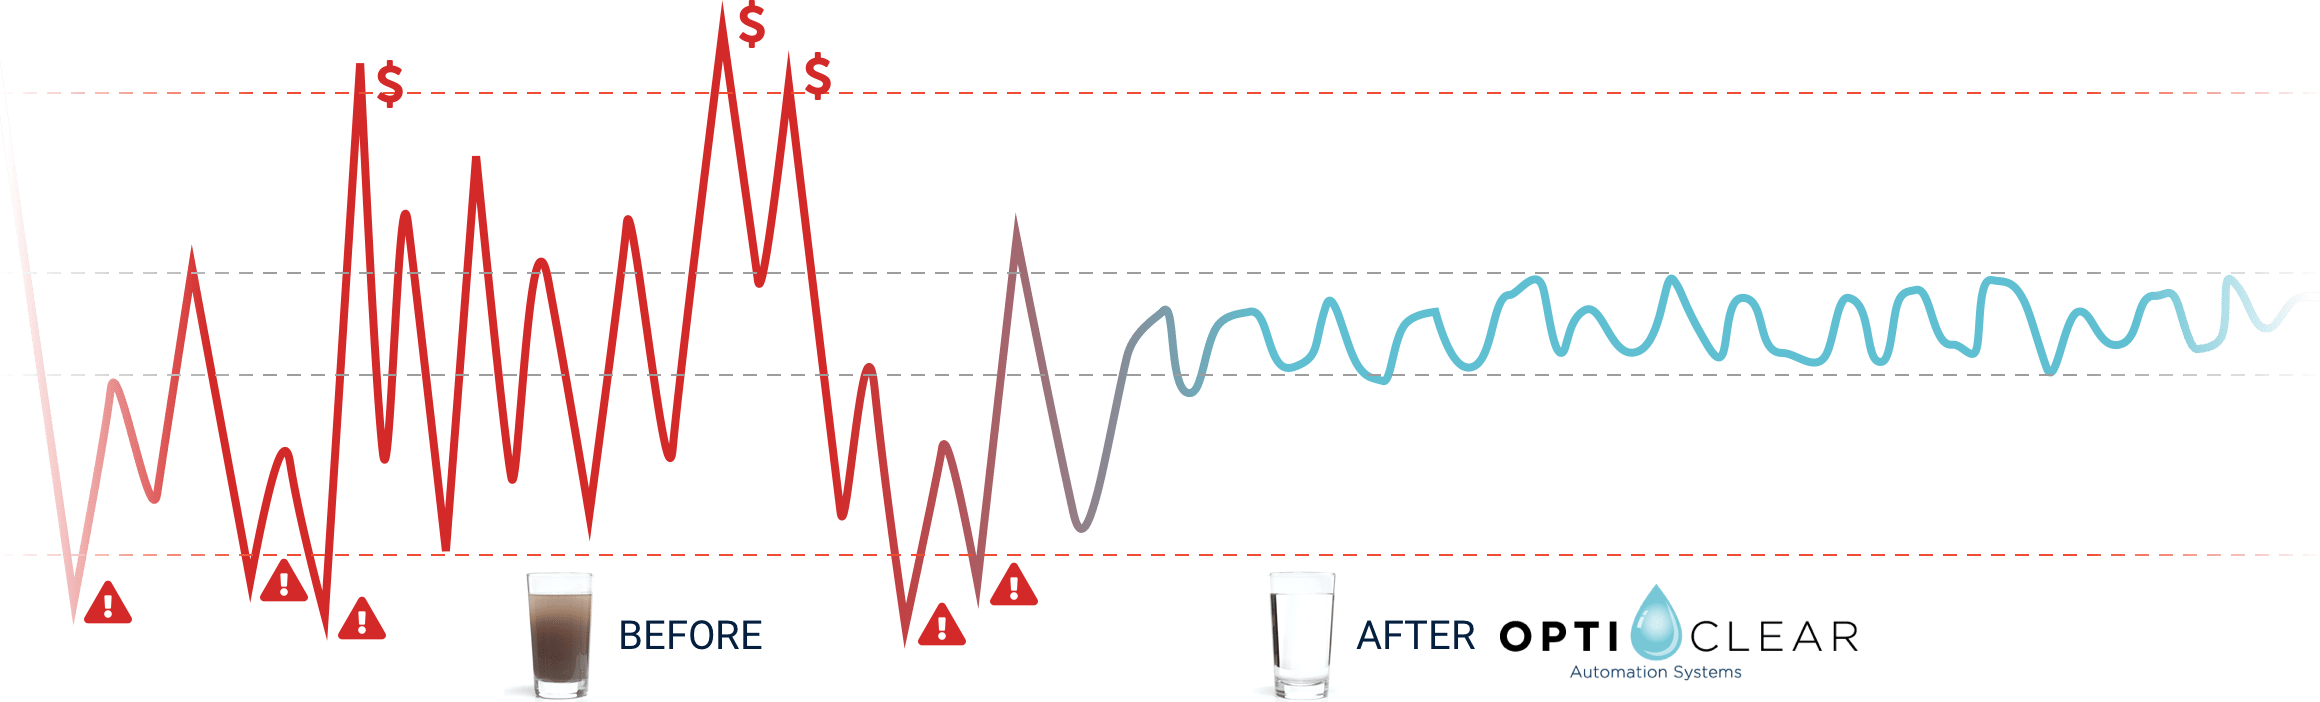 Before and After Opticlear Chart